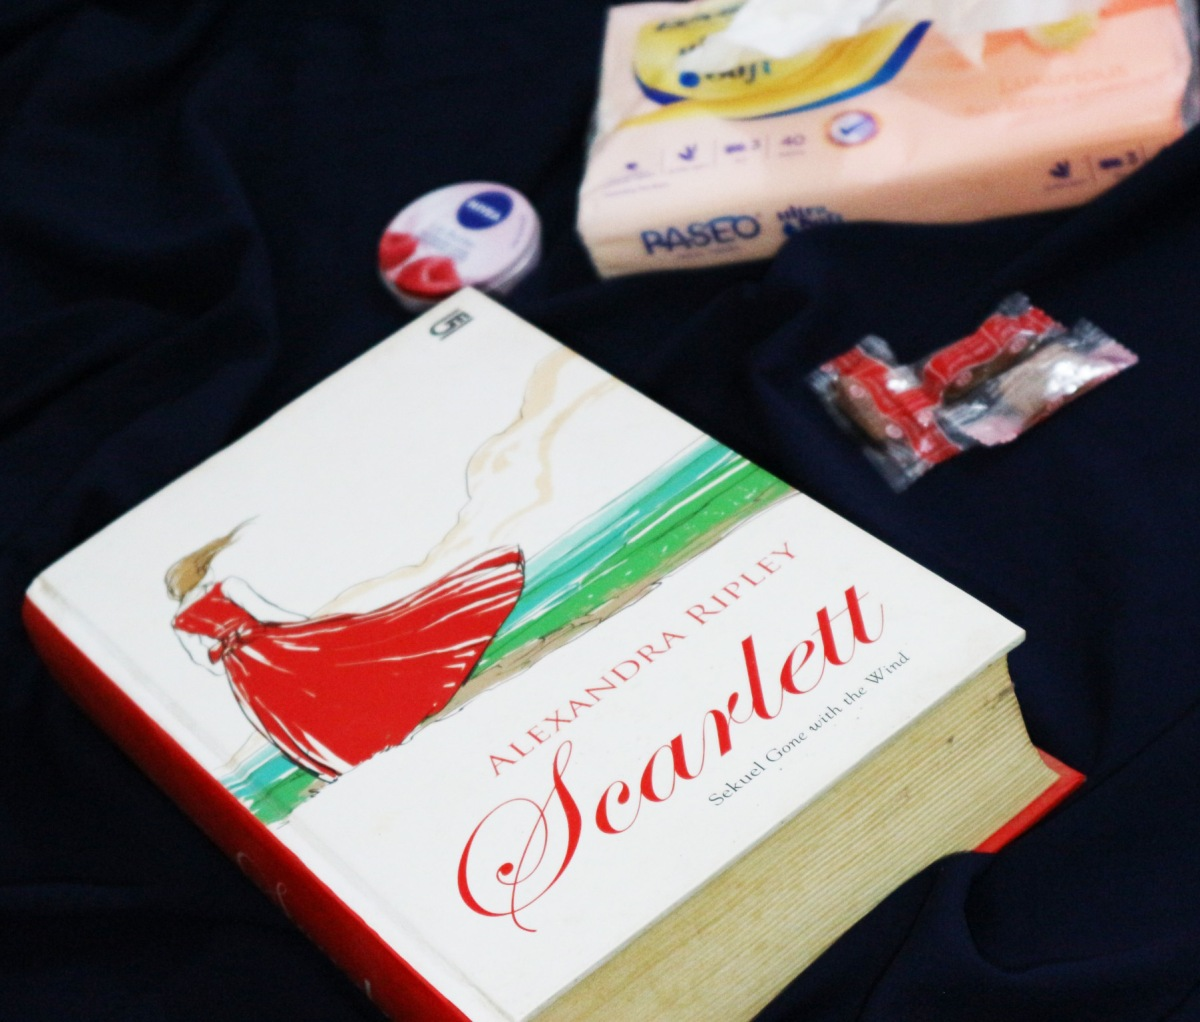 [Review buku] Scarlett (Gone With The Wind #2), Happy ending buat Scarlett O'Hara